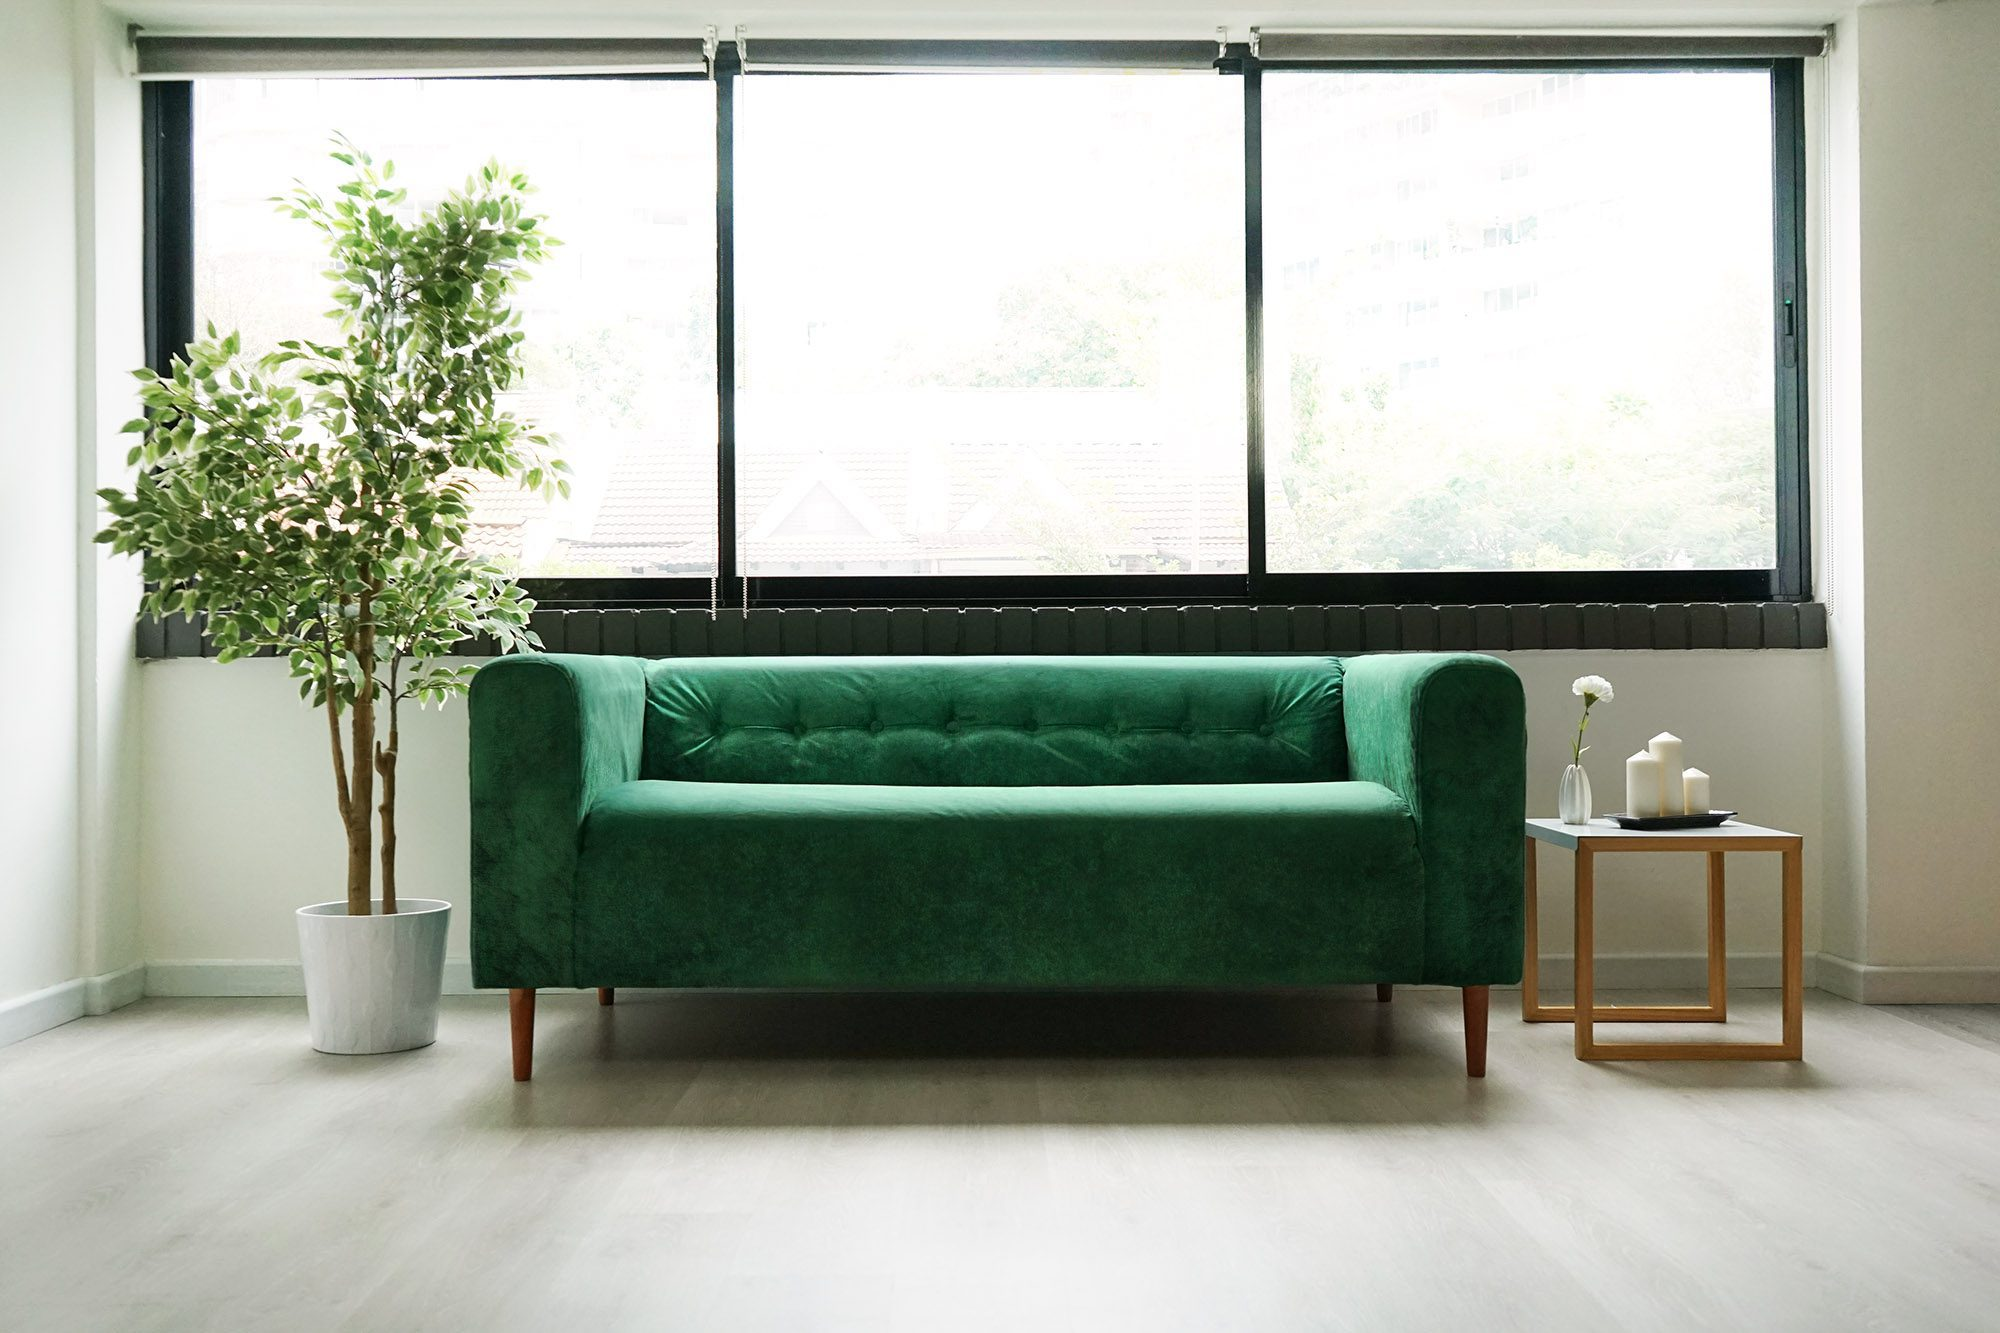 How Do I Find a Slipcover that Fits my Sofa A Buying Guide